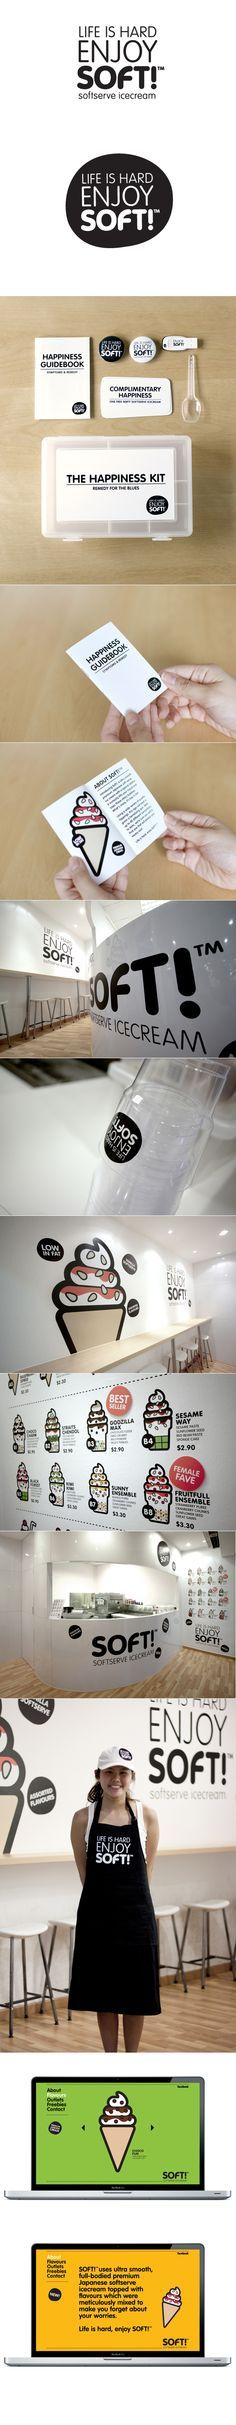 SoftTM branding by Bravo Company. Yumm #identity #packaging #branding #marketing PD http://laninabipolar.com?utm_content=buffercba09&utm_medium=social&utm_source=pinterest.com&utm_campaign=buffer http://arcreactions.com/services/video-production/?utm_content=buffer714ef&utm_medium=social&utm_source=pinterest.com&utm_campaign=buffer